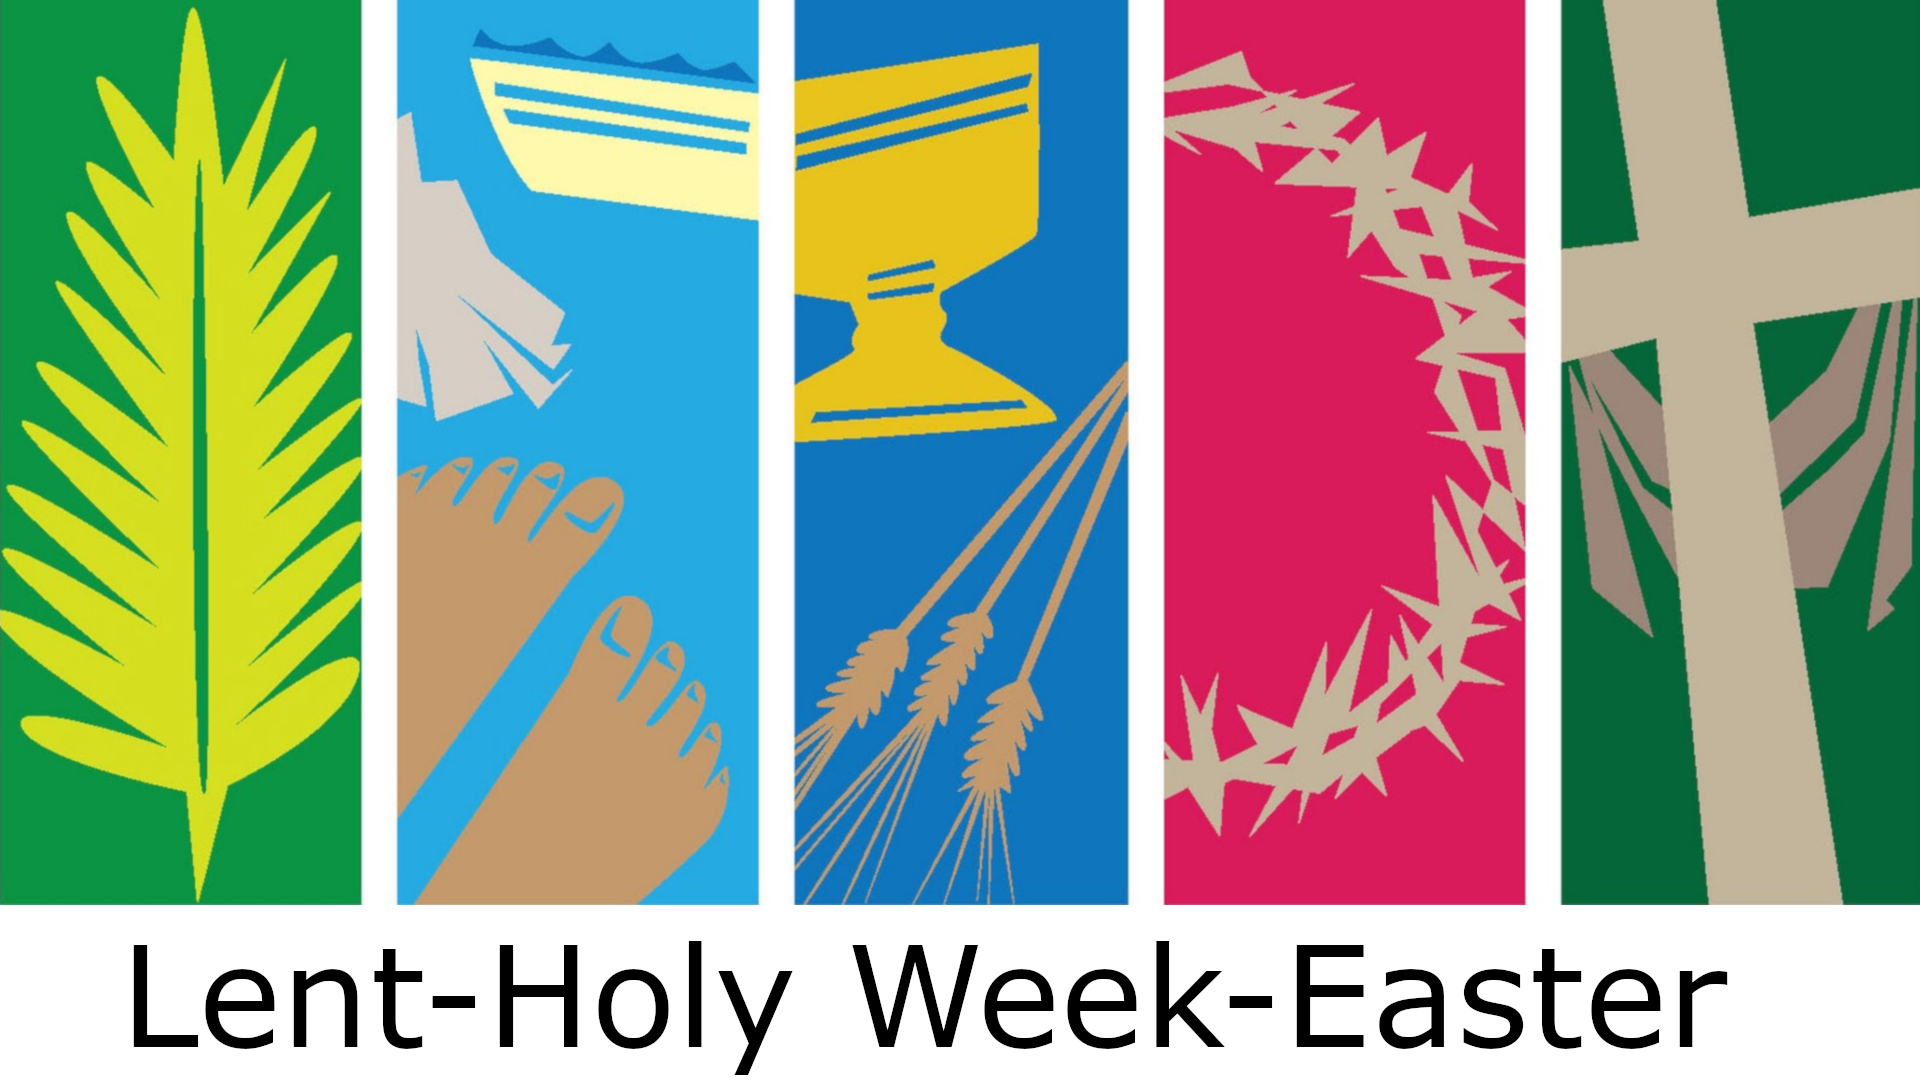 -Lent, Holy Week, and Easter Worship Services and Readings